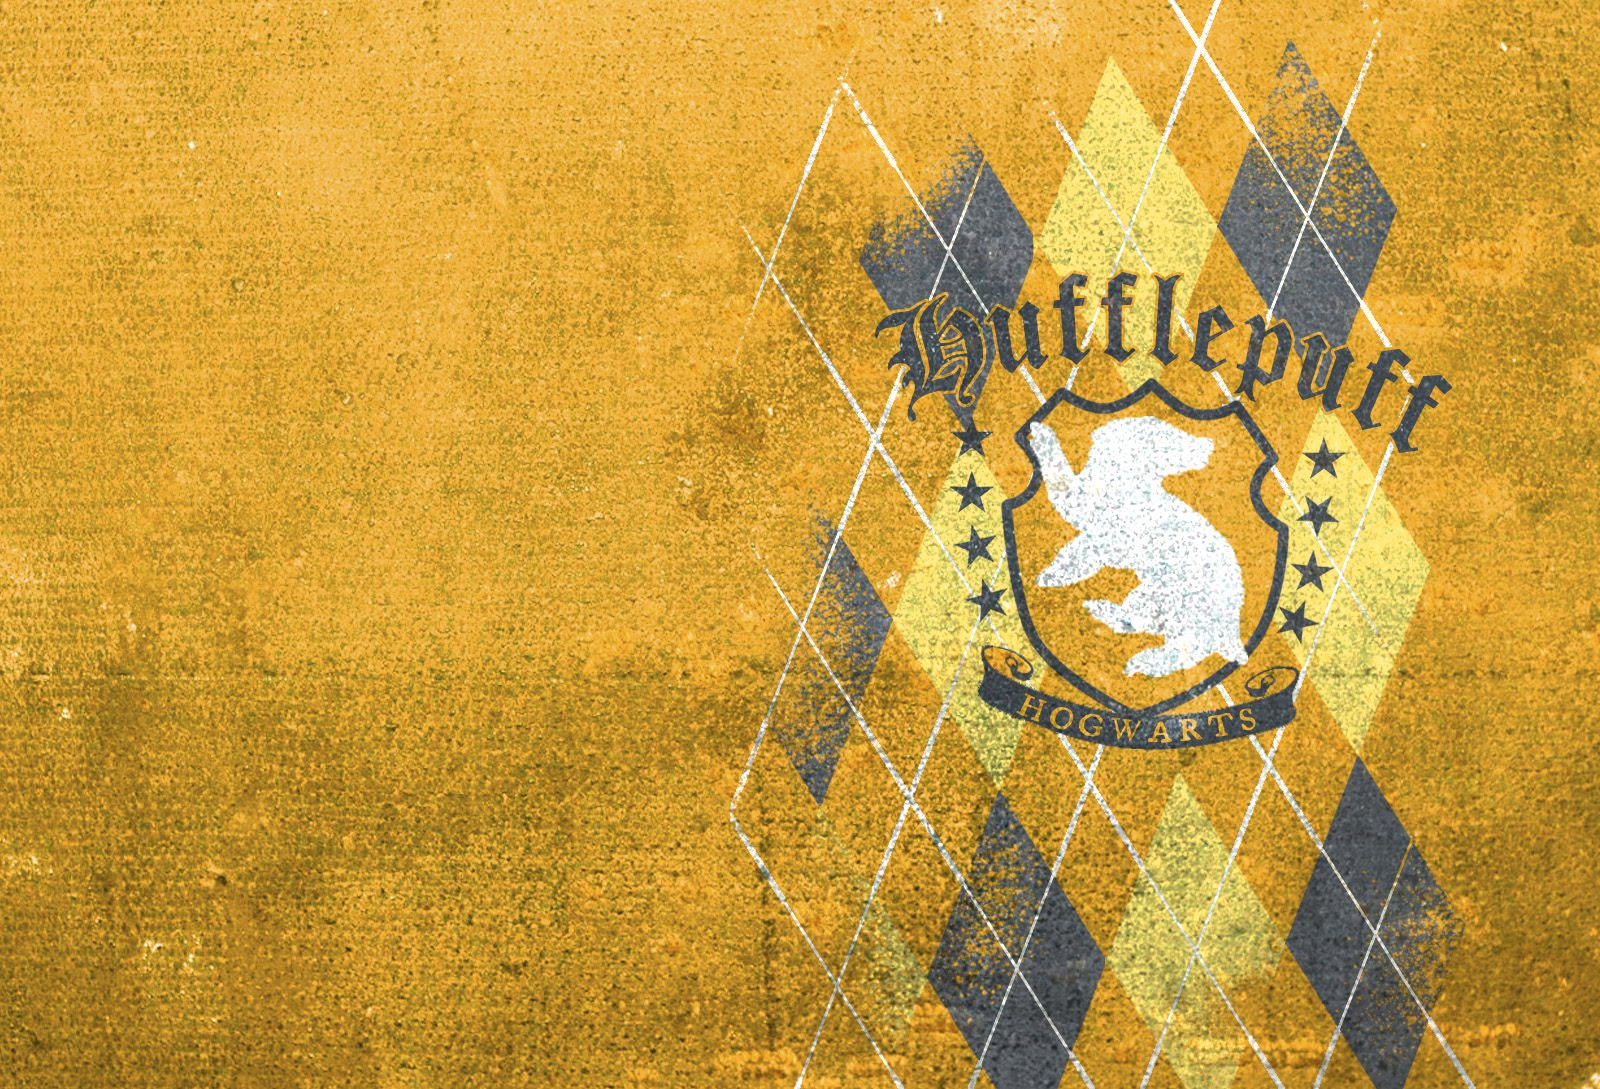 wallpapers pottermore